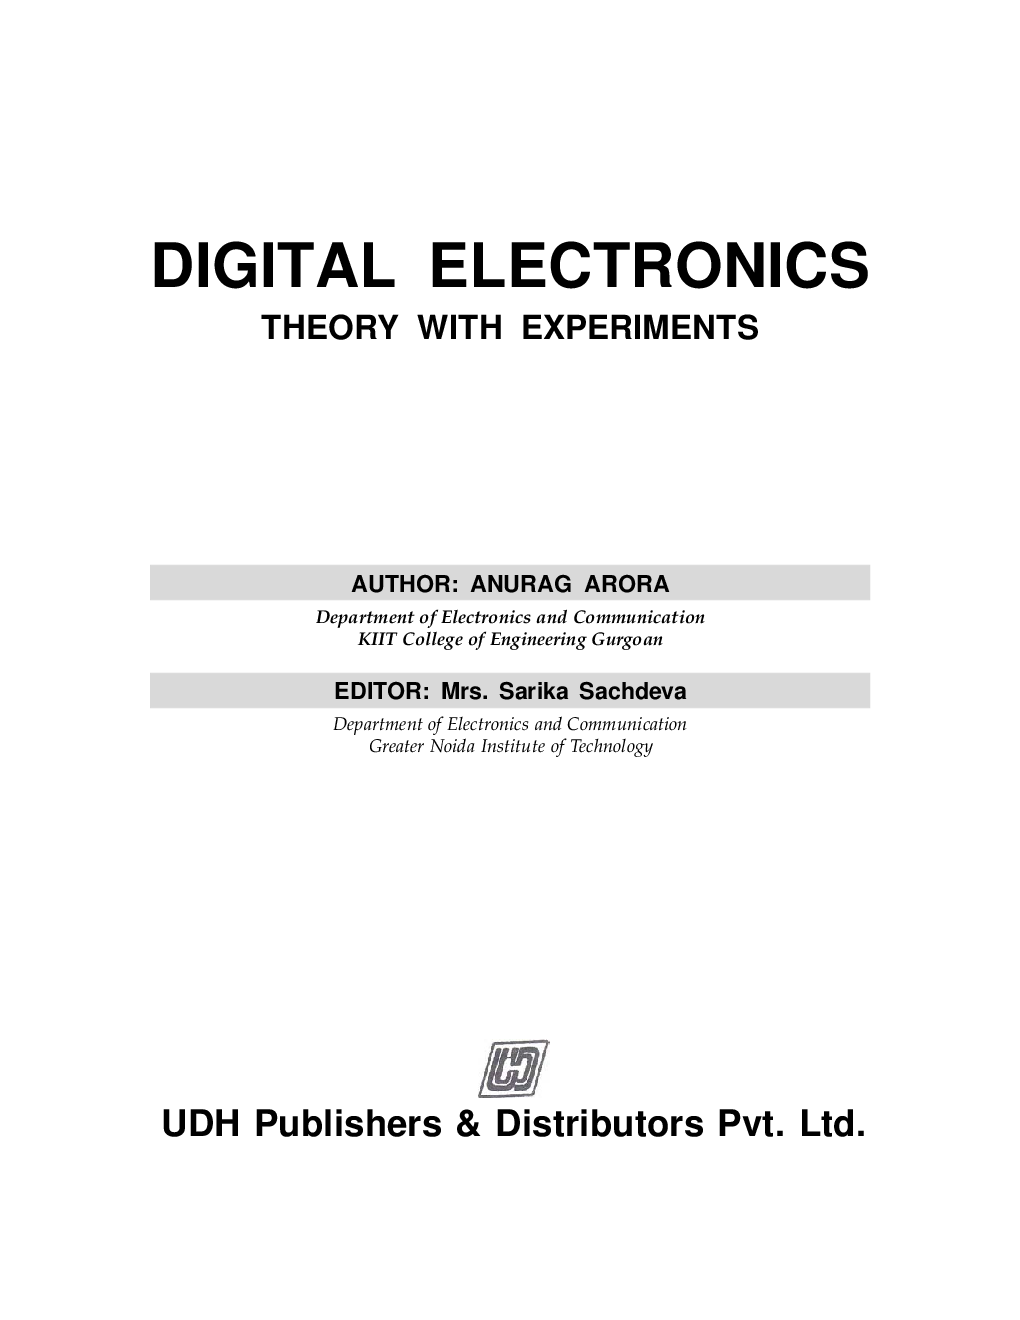 Digital Electronics, Theory with Experiments eBook - Page 2